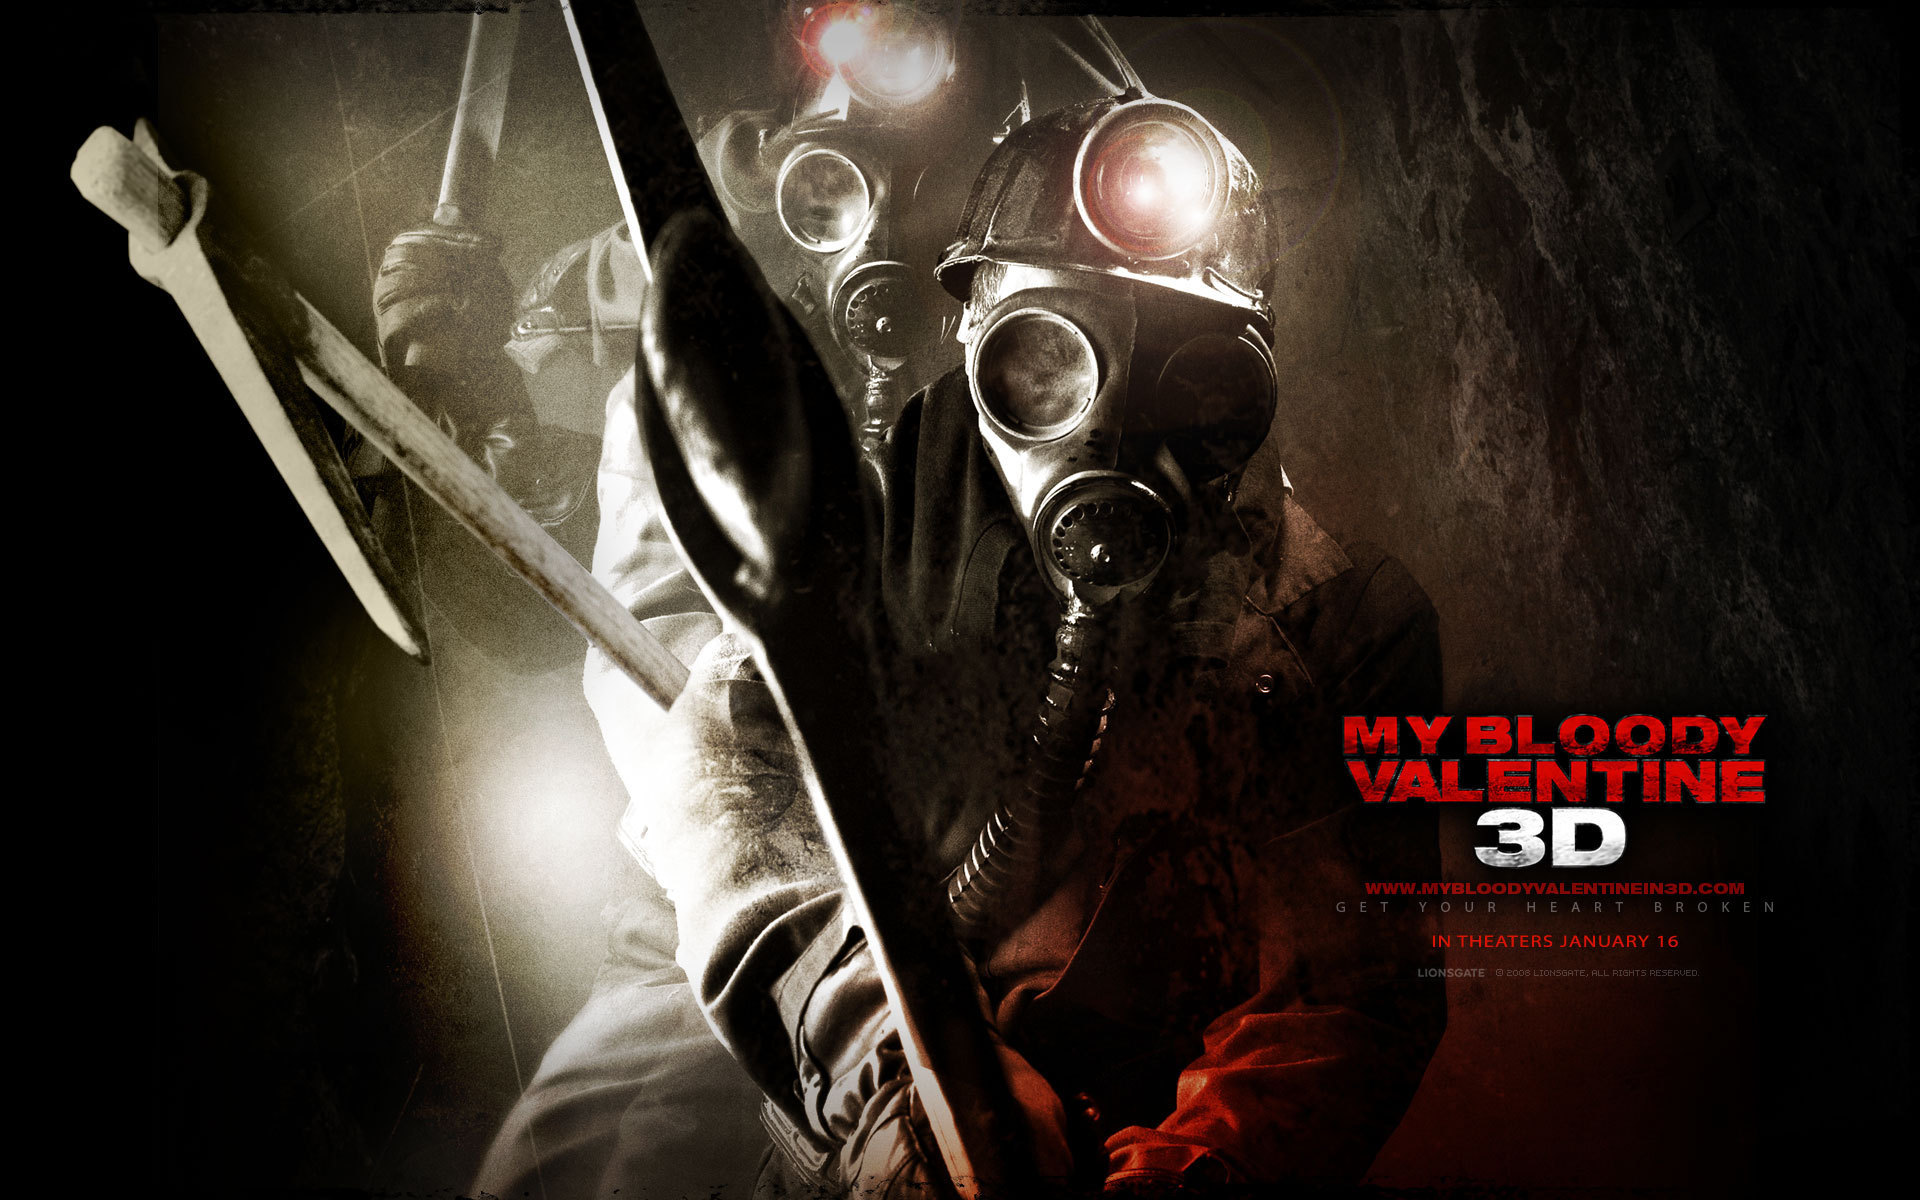 My Bloody Valentine 3D wallpapers - Horror Movies 1920x1200